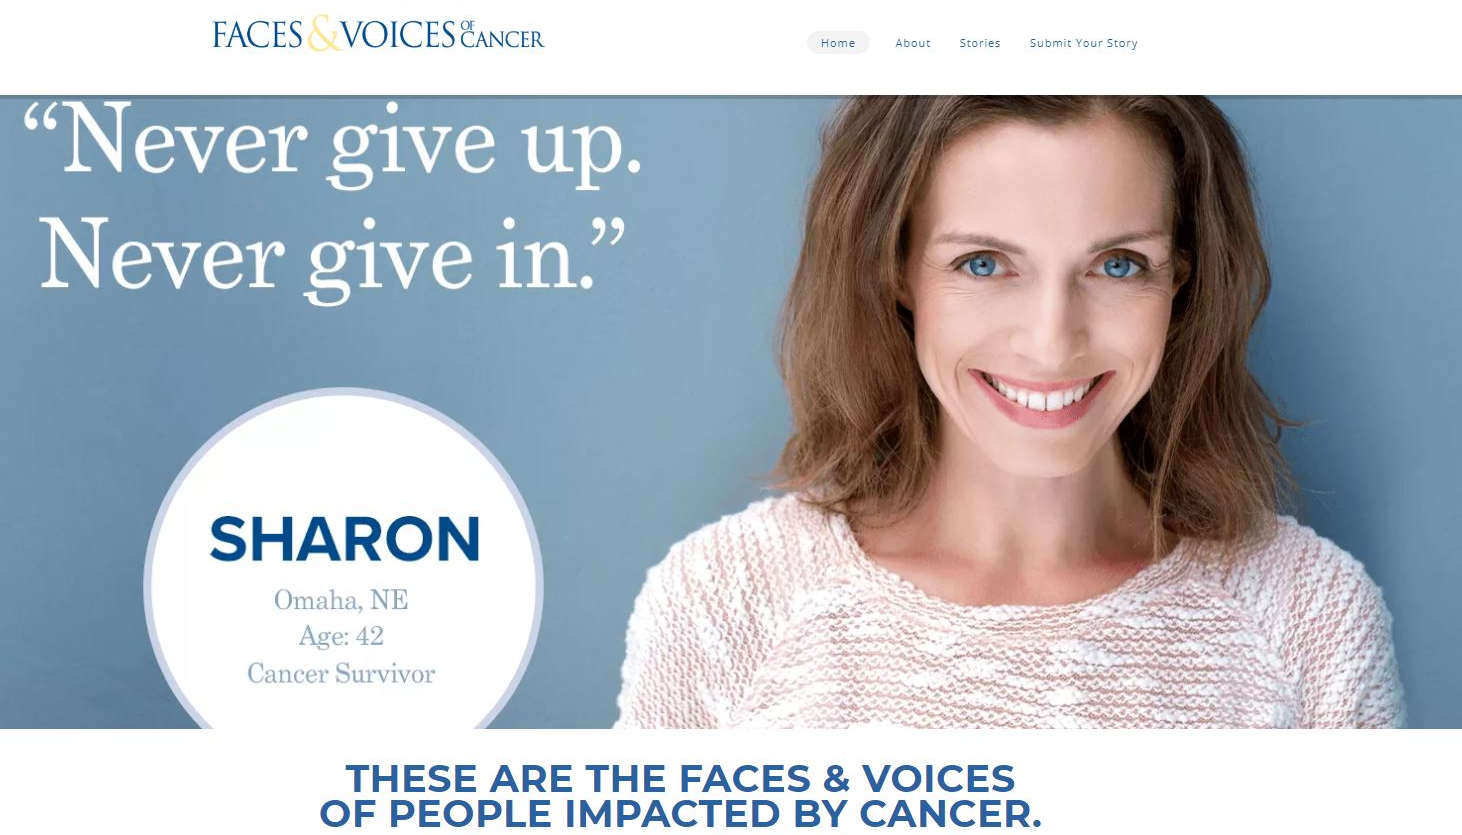 Face and voices of cancer Website Screenshot